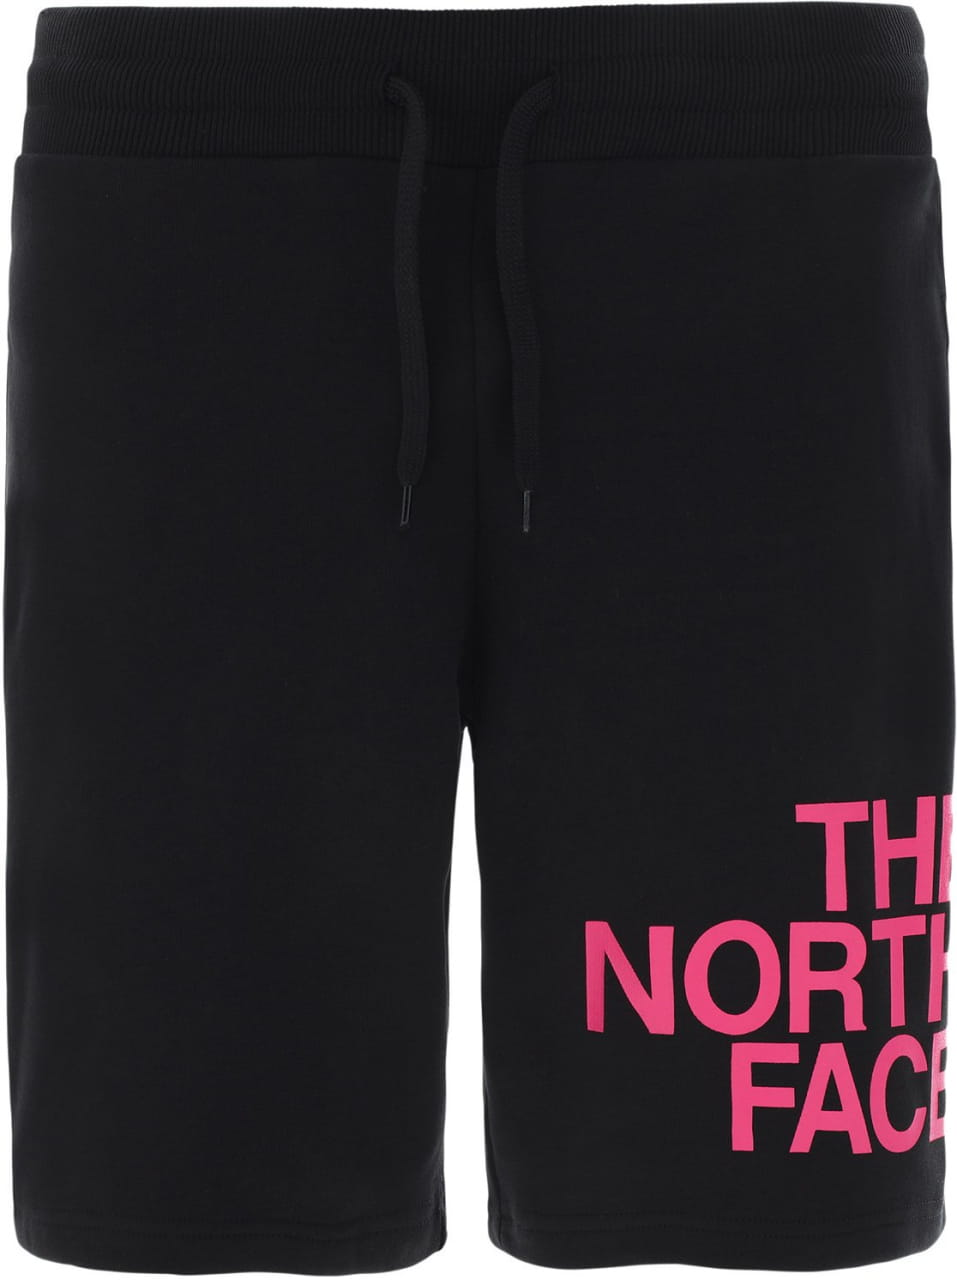 Shorts The North Face Men's Graphic Shorts